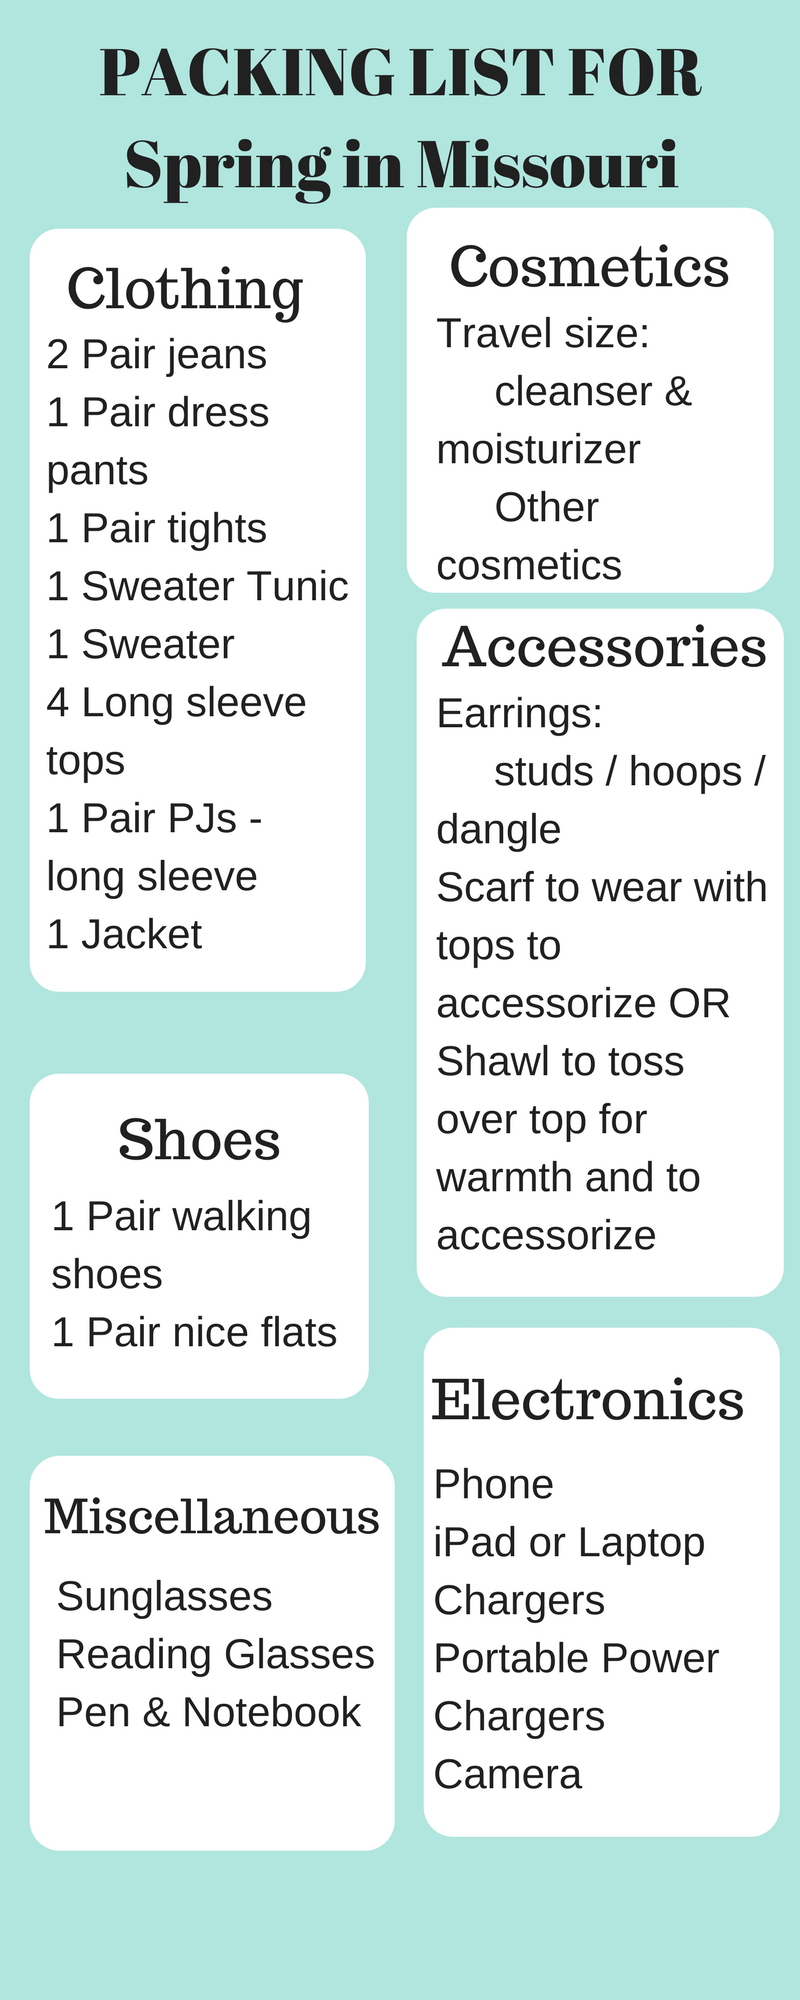 Packing List for Spring in Missouri